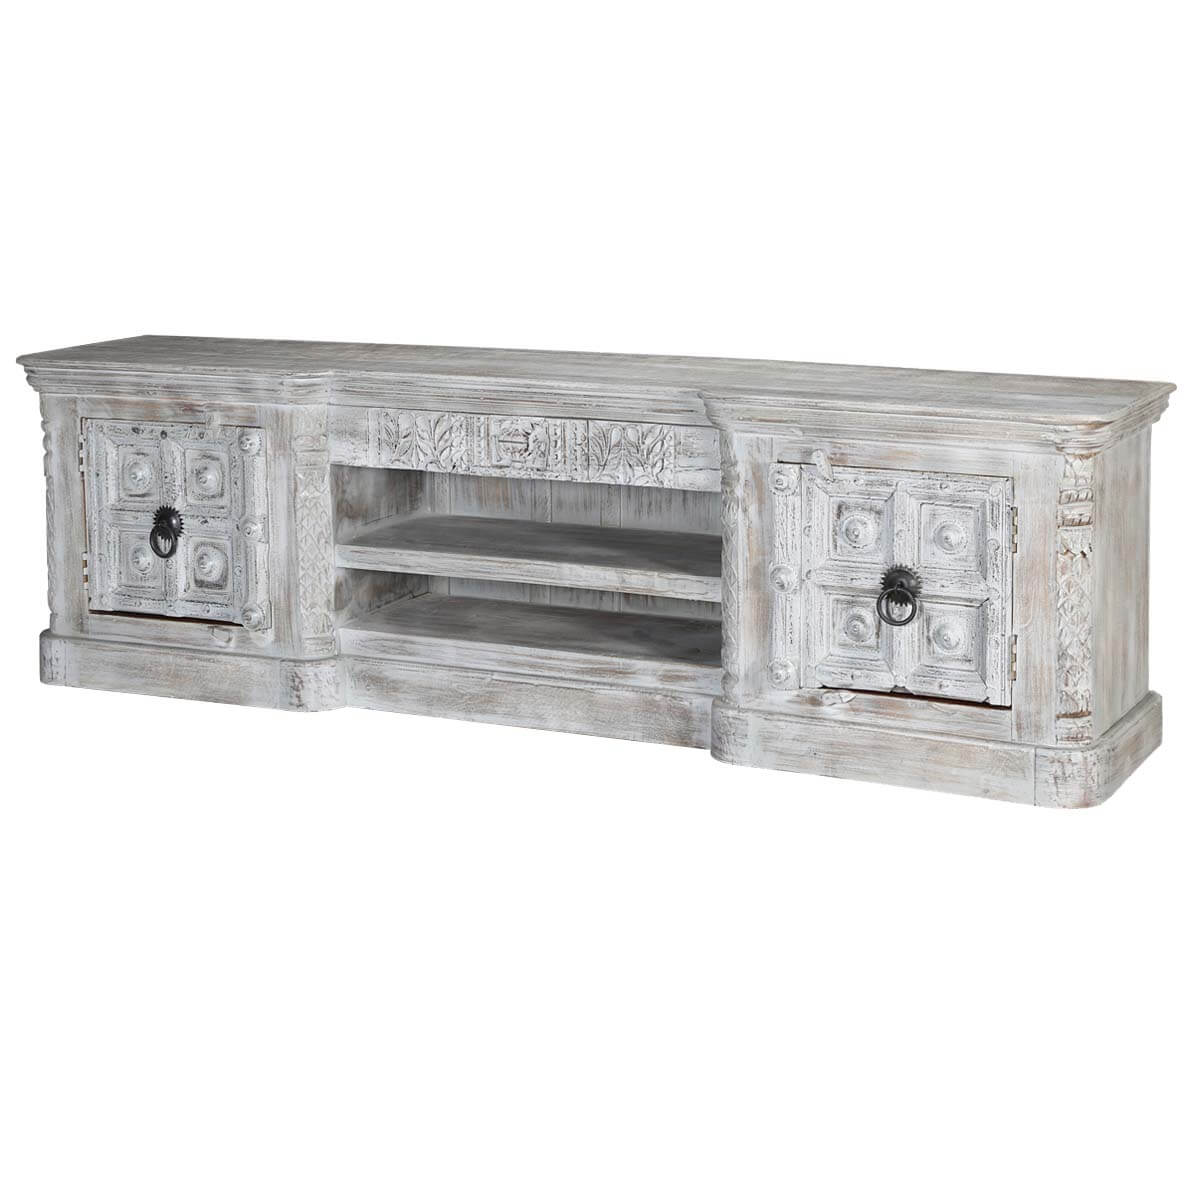 "Palazzo 91"" Light Grey 2-Door Solid Wood Media Console Cabinet"